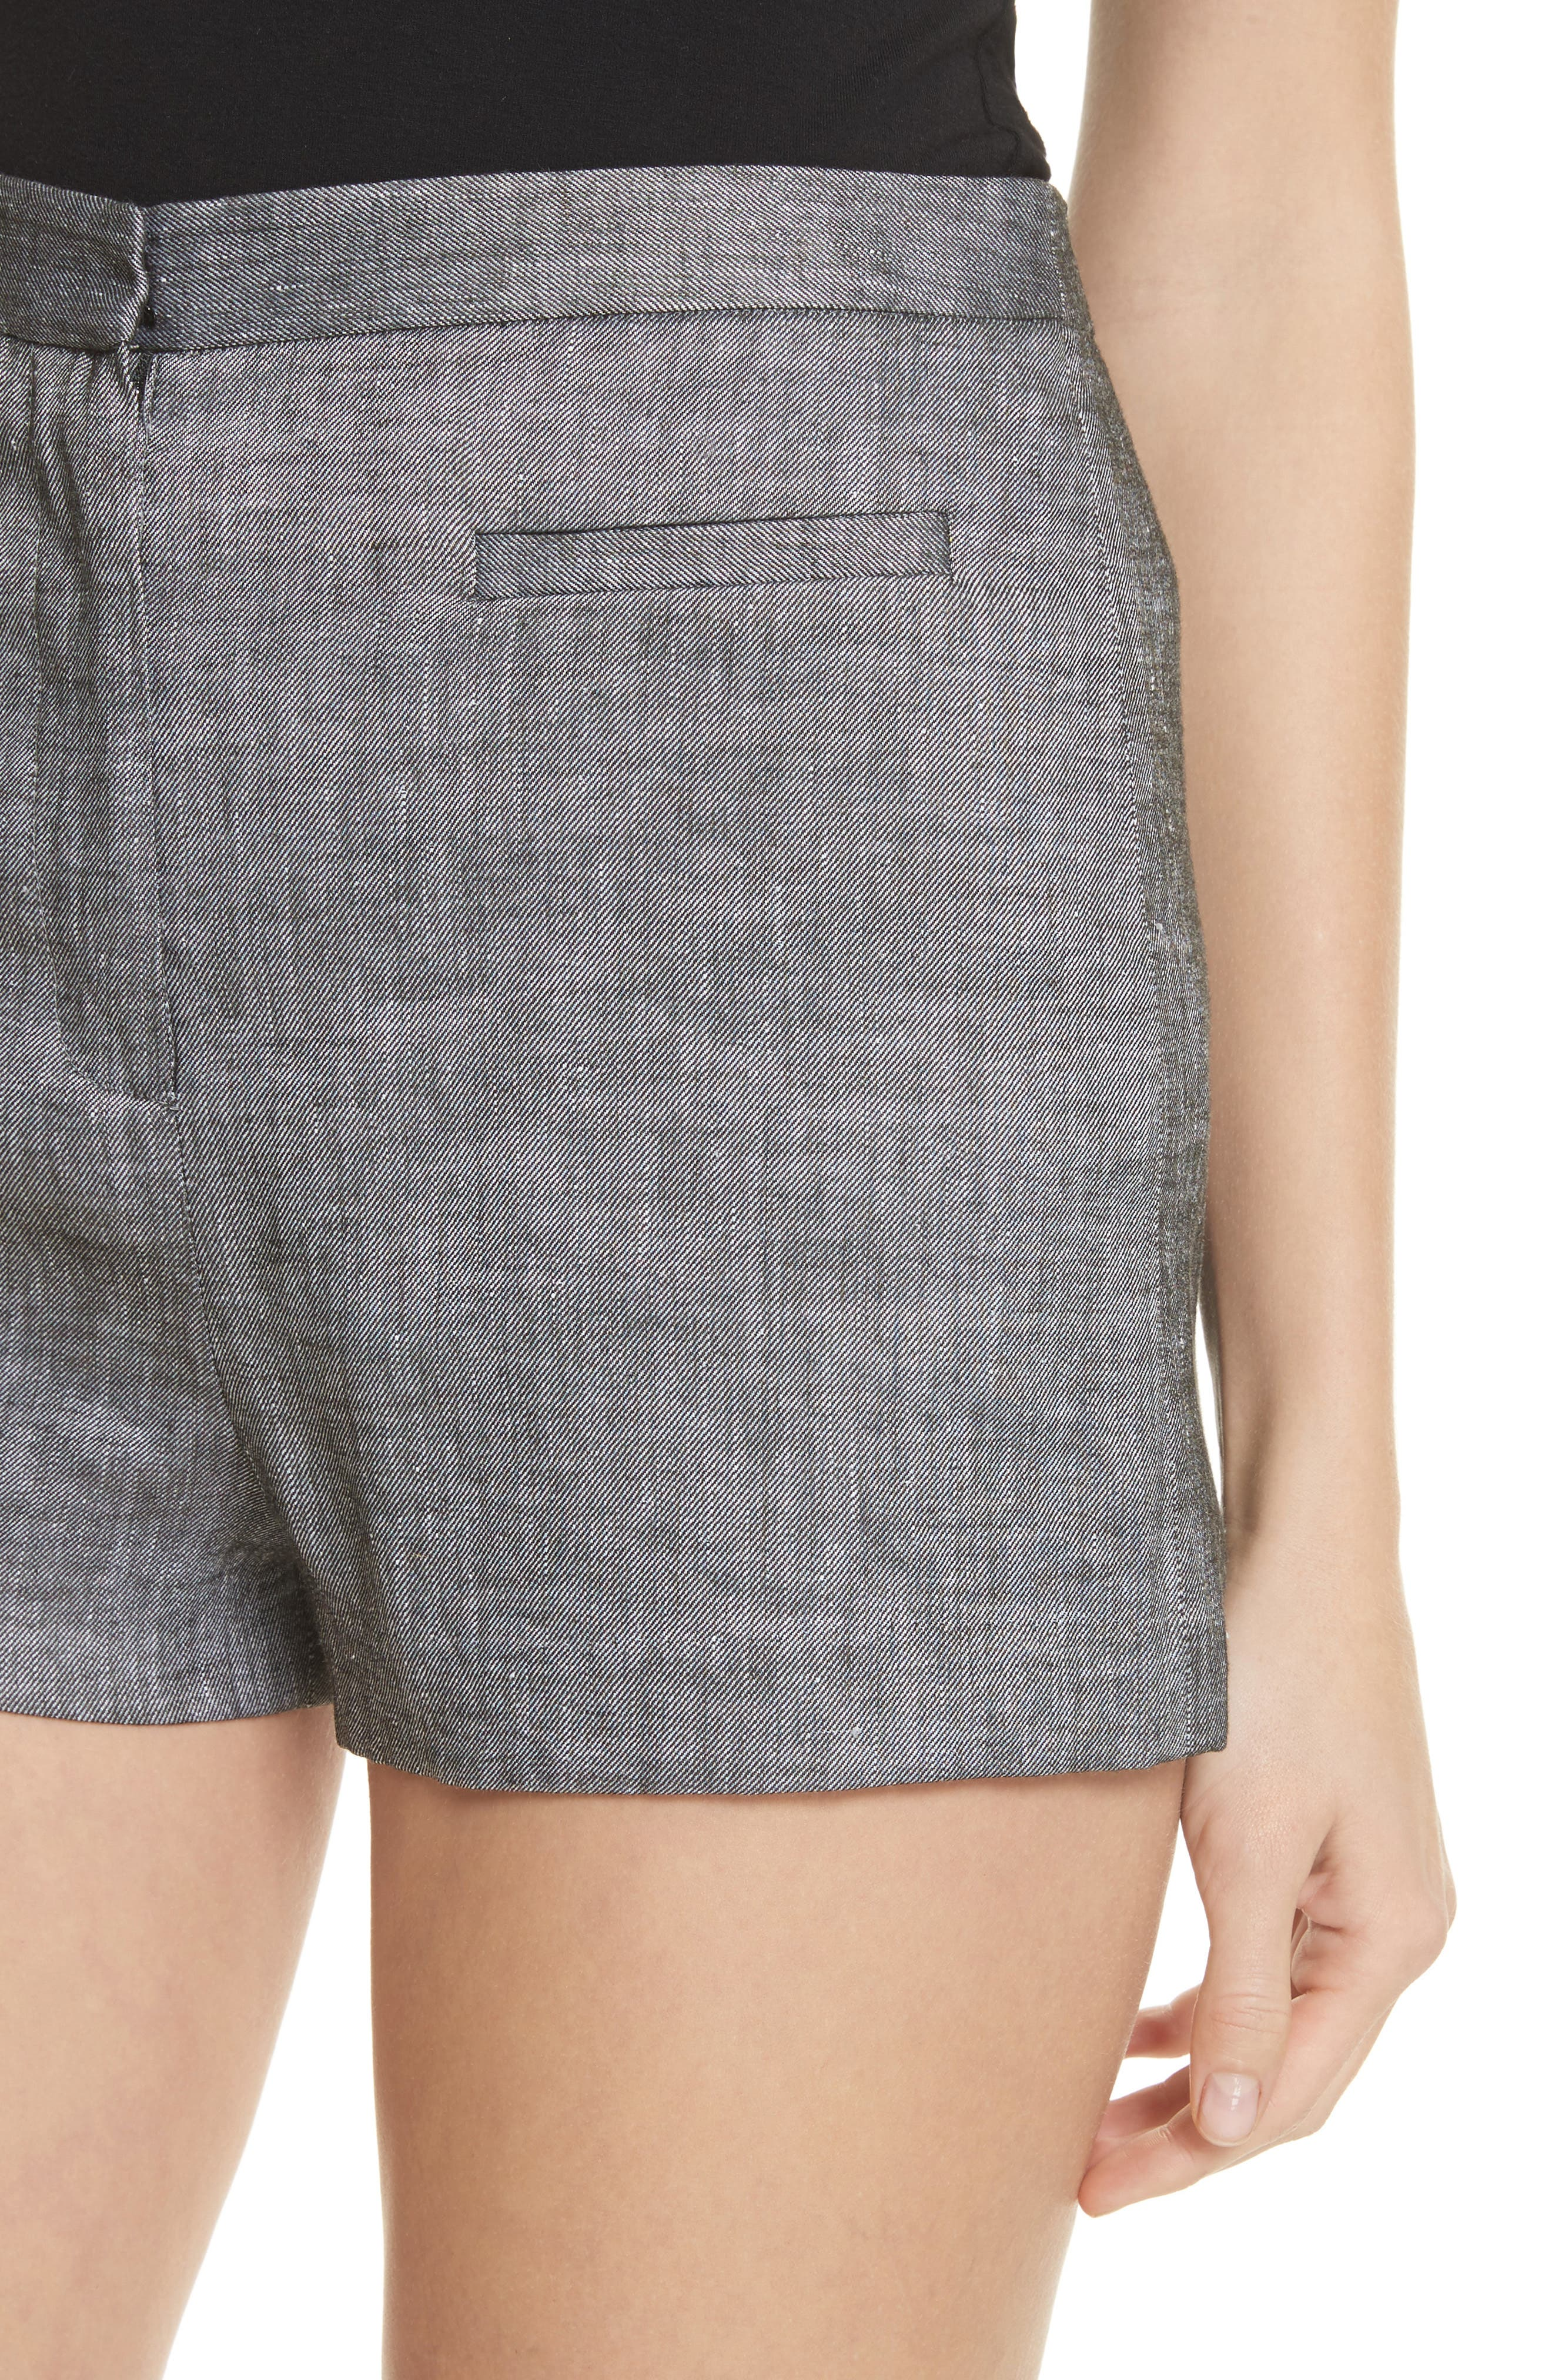 Trudee High Waist Shorts,                             Alternate thumbnail 4, color,                             Olive